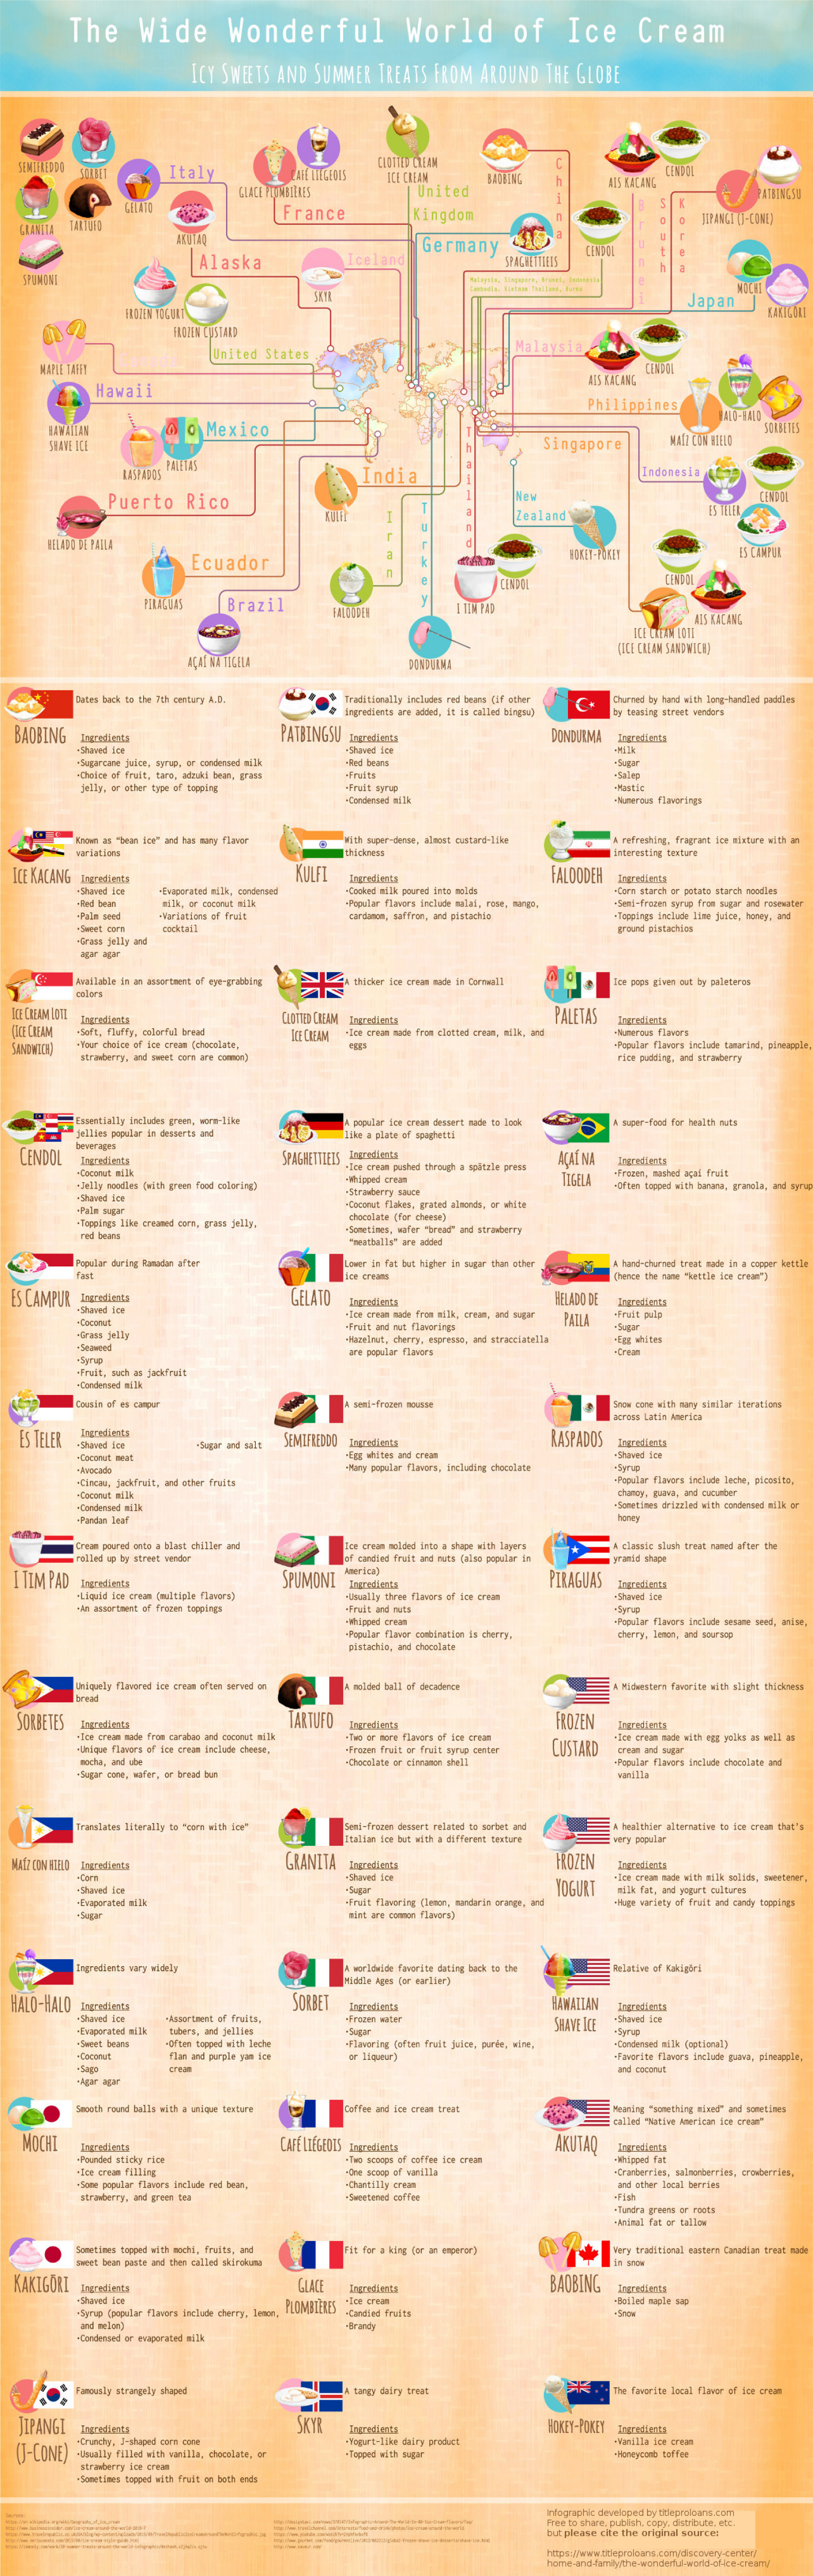 The Wonderful World of Ice Cream Infographic